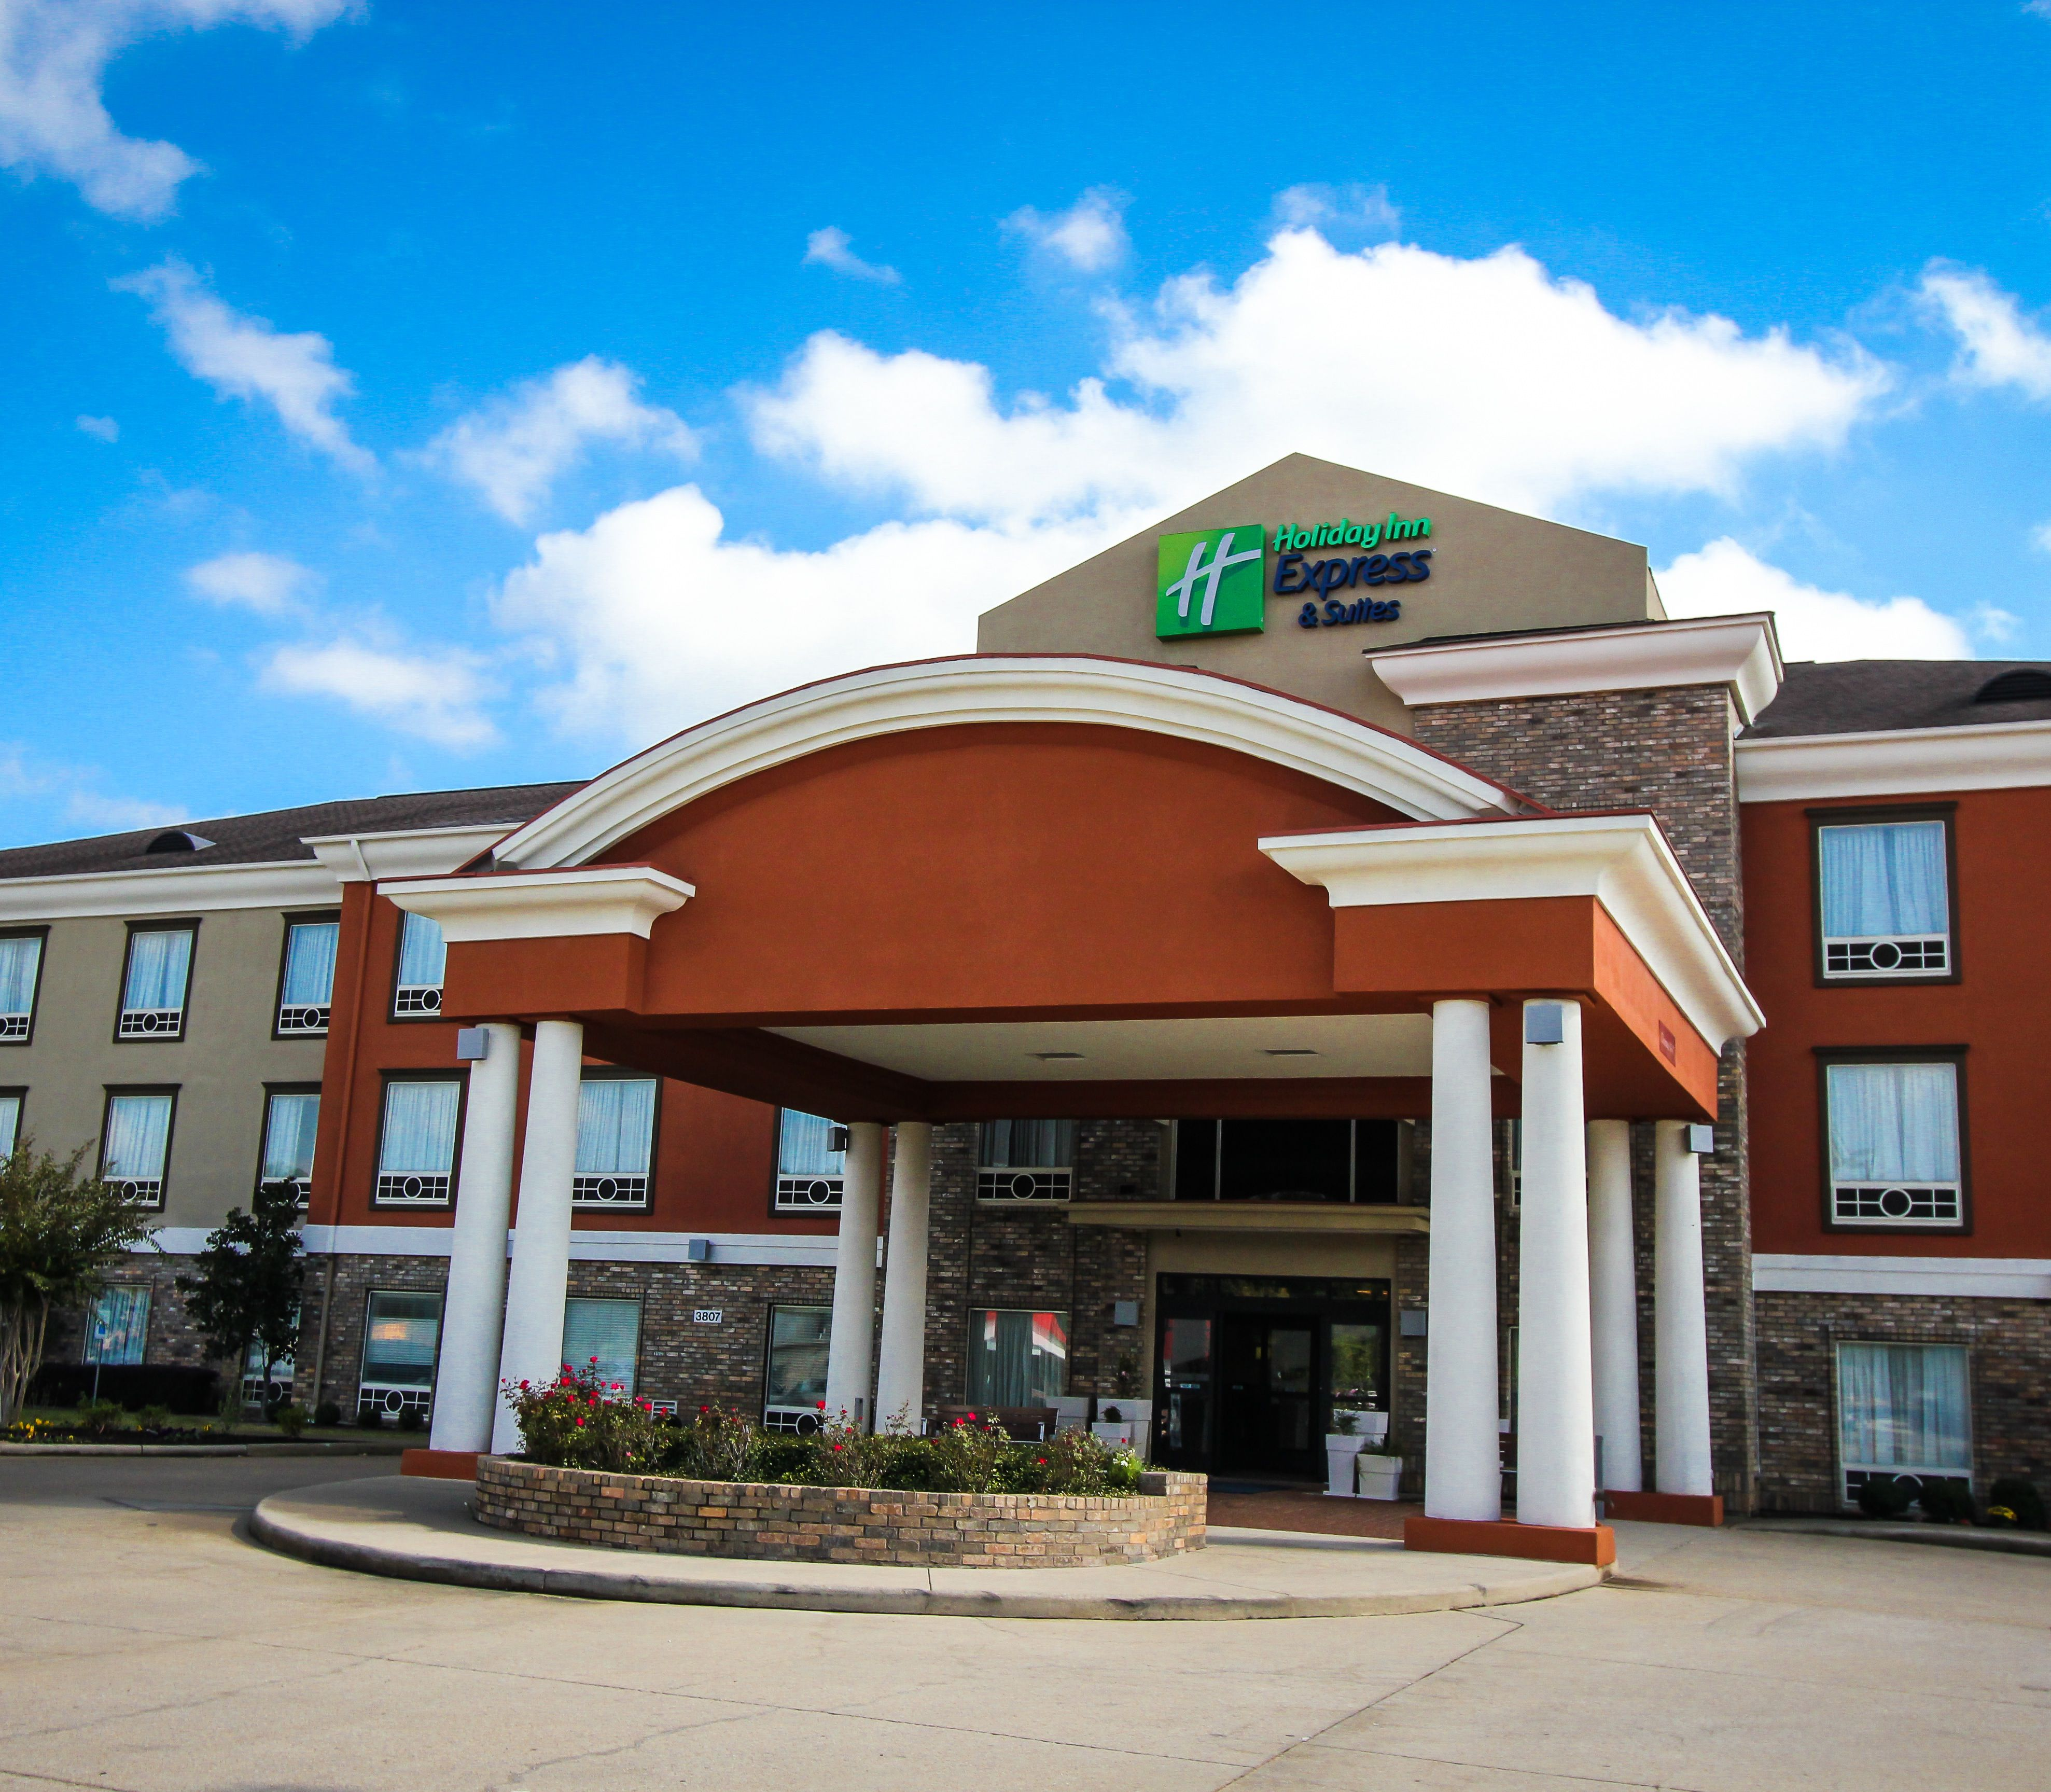 Holiday Inn Express Dallas: Holiday Inn Express Mystic In Mystic, CT